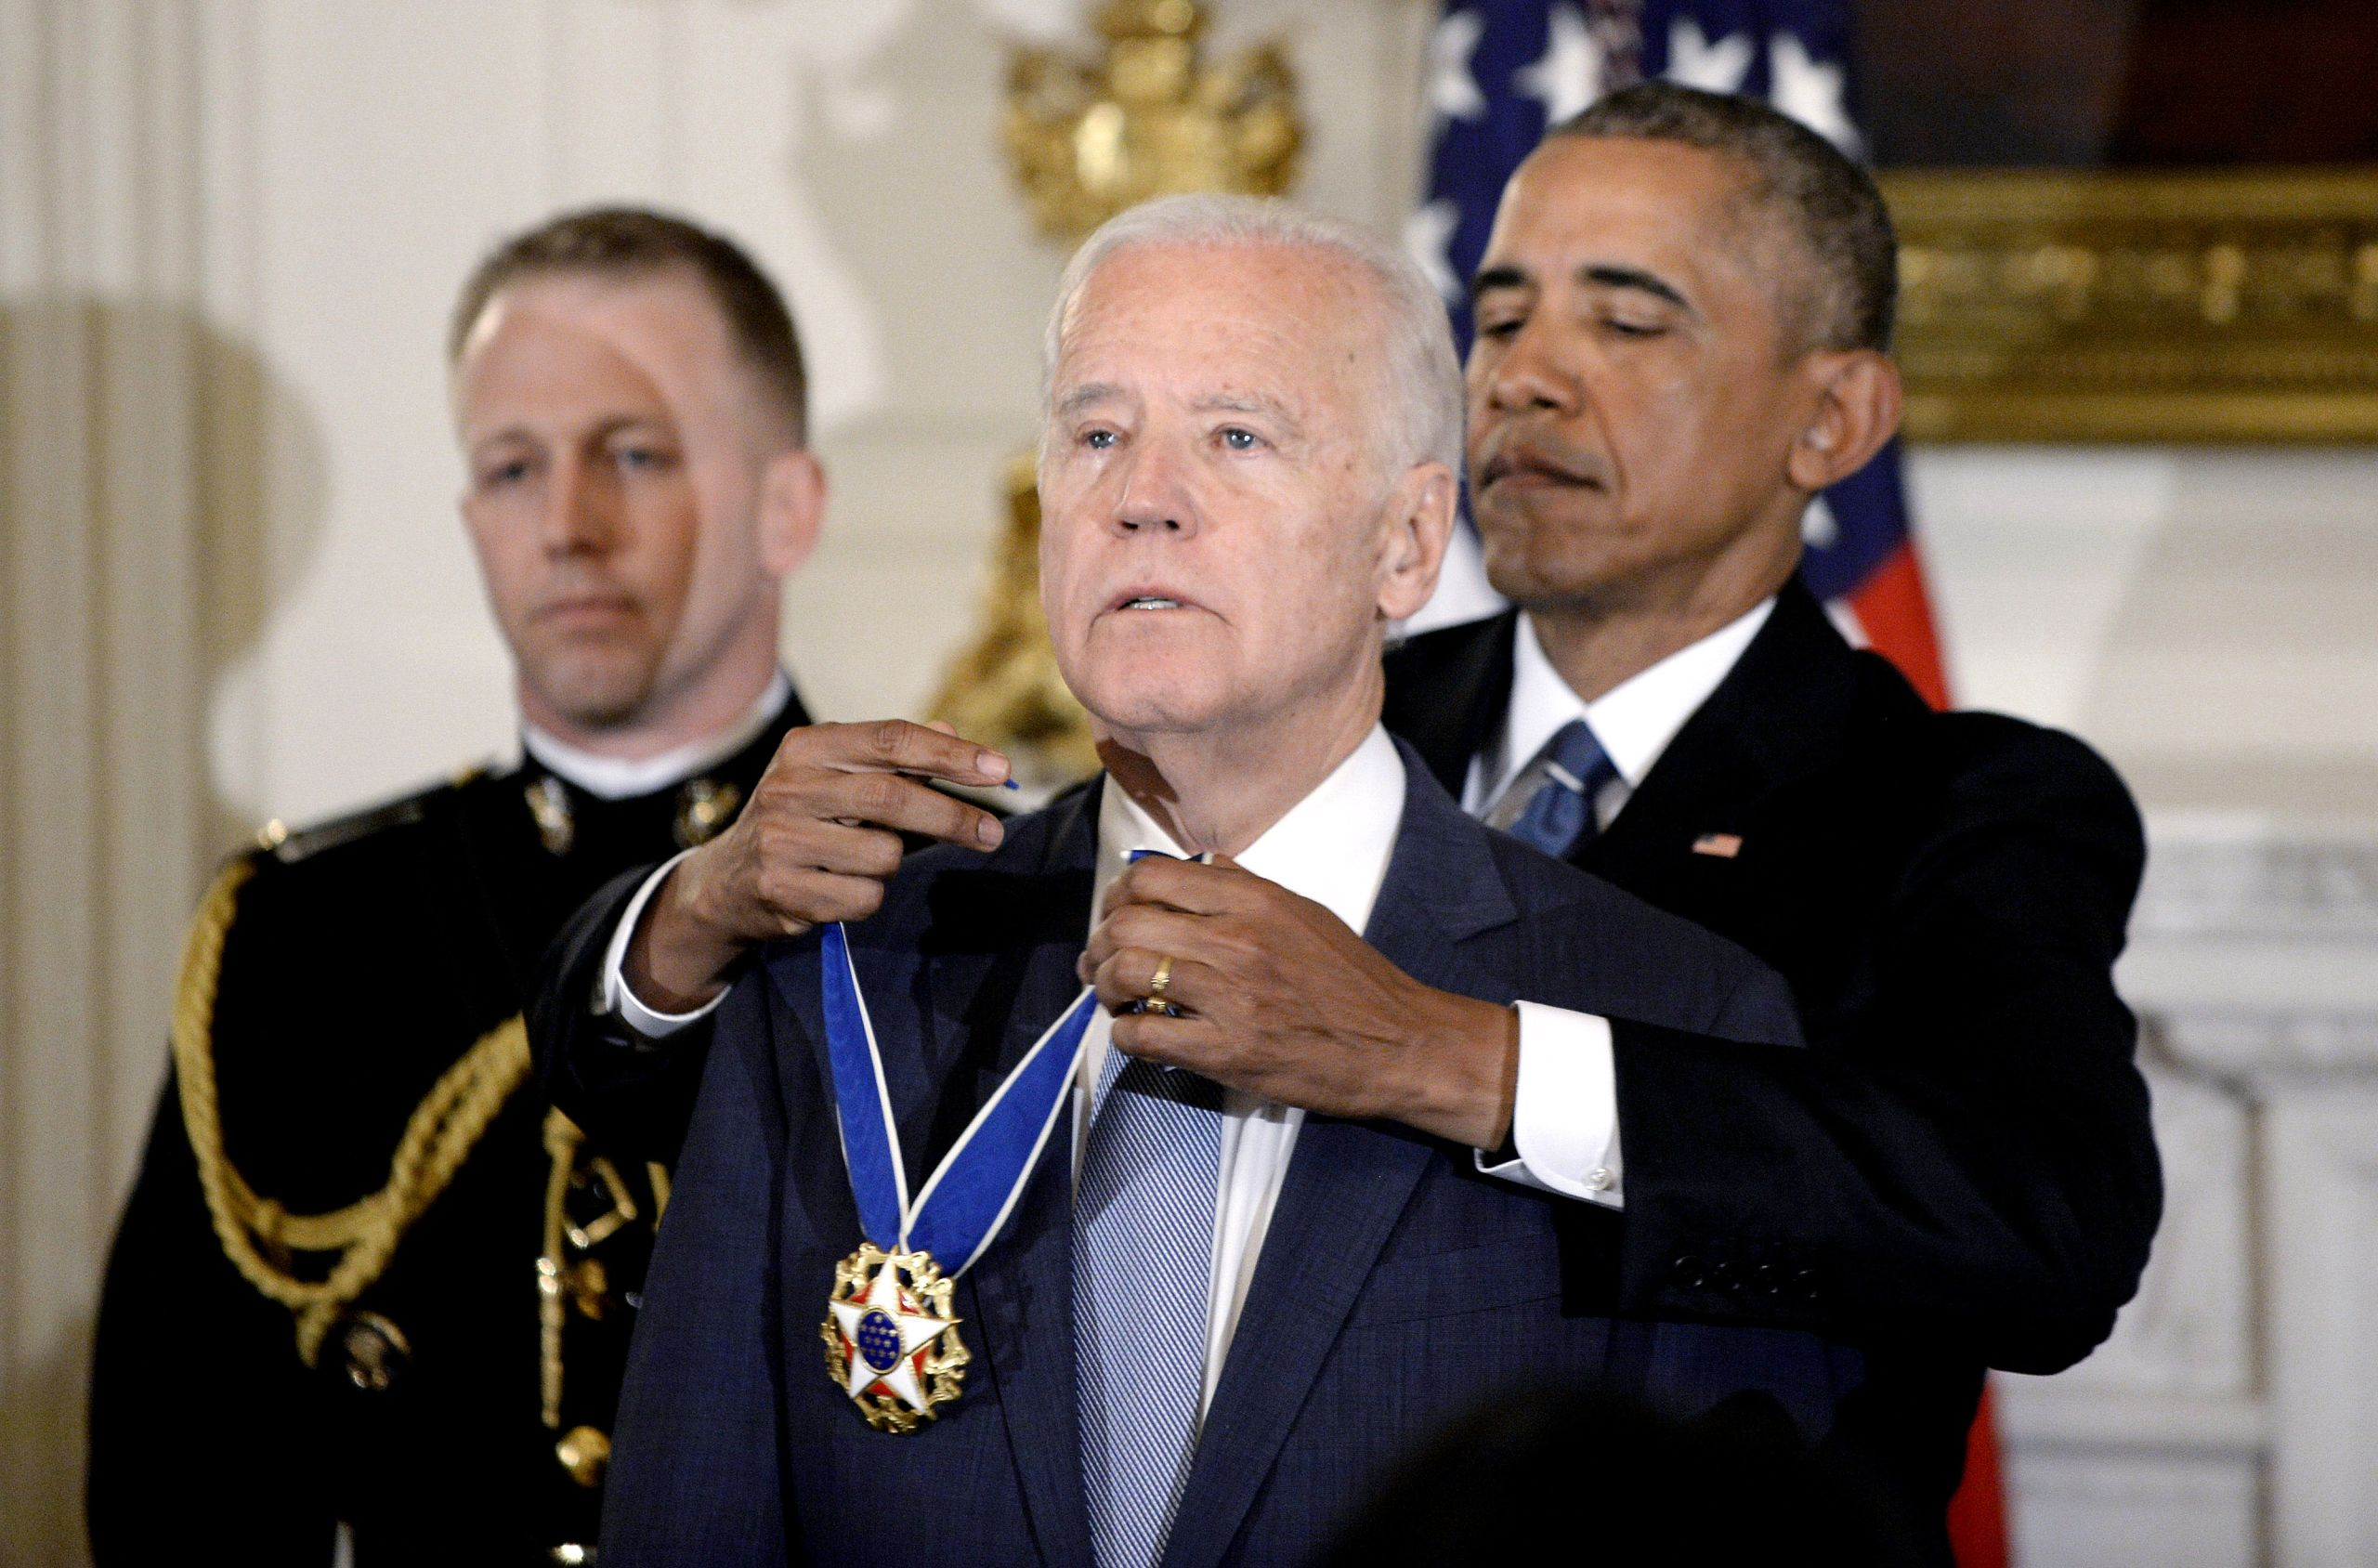 Obama gives Joe Biden Medal of Honour